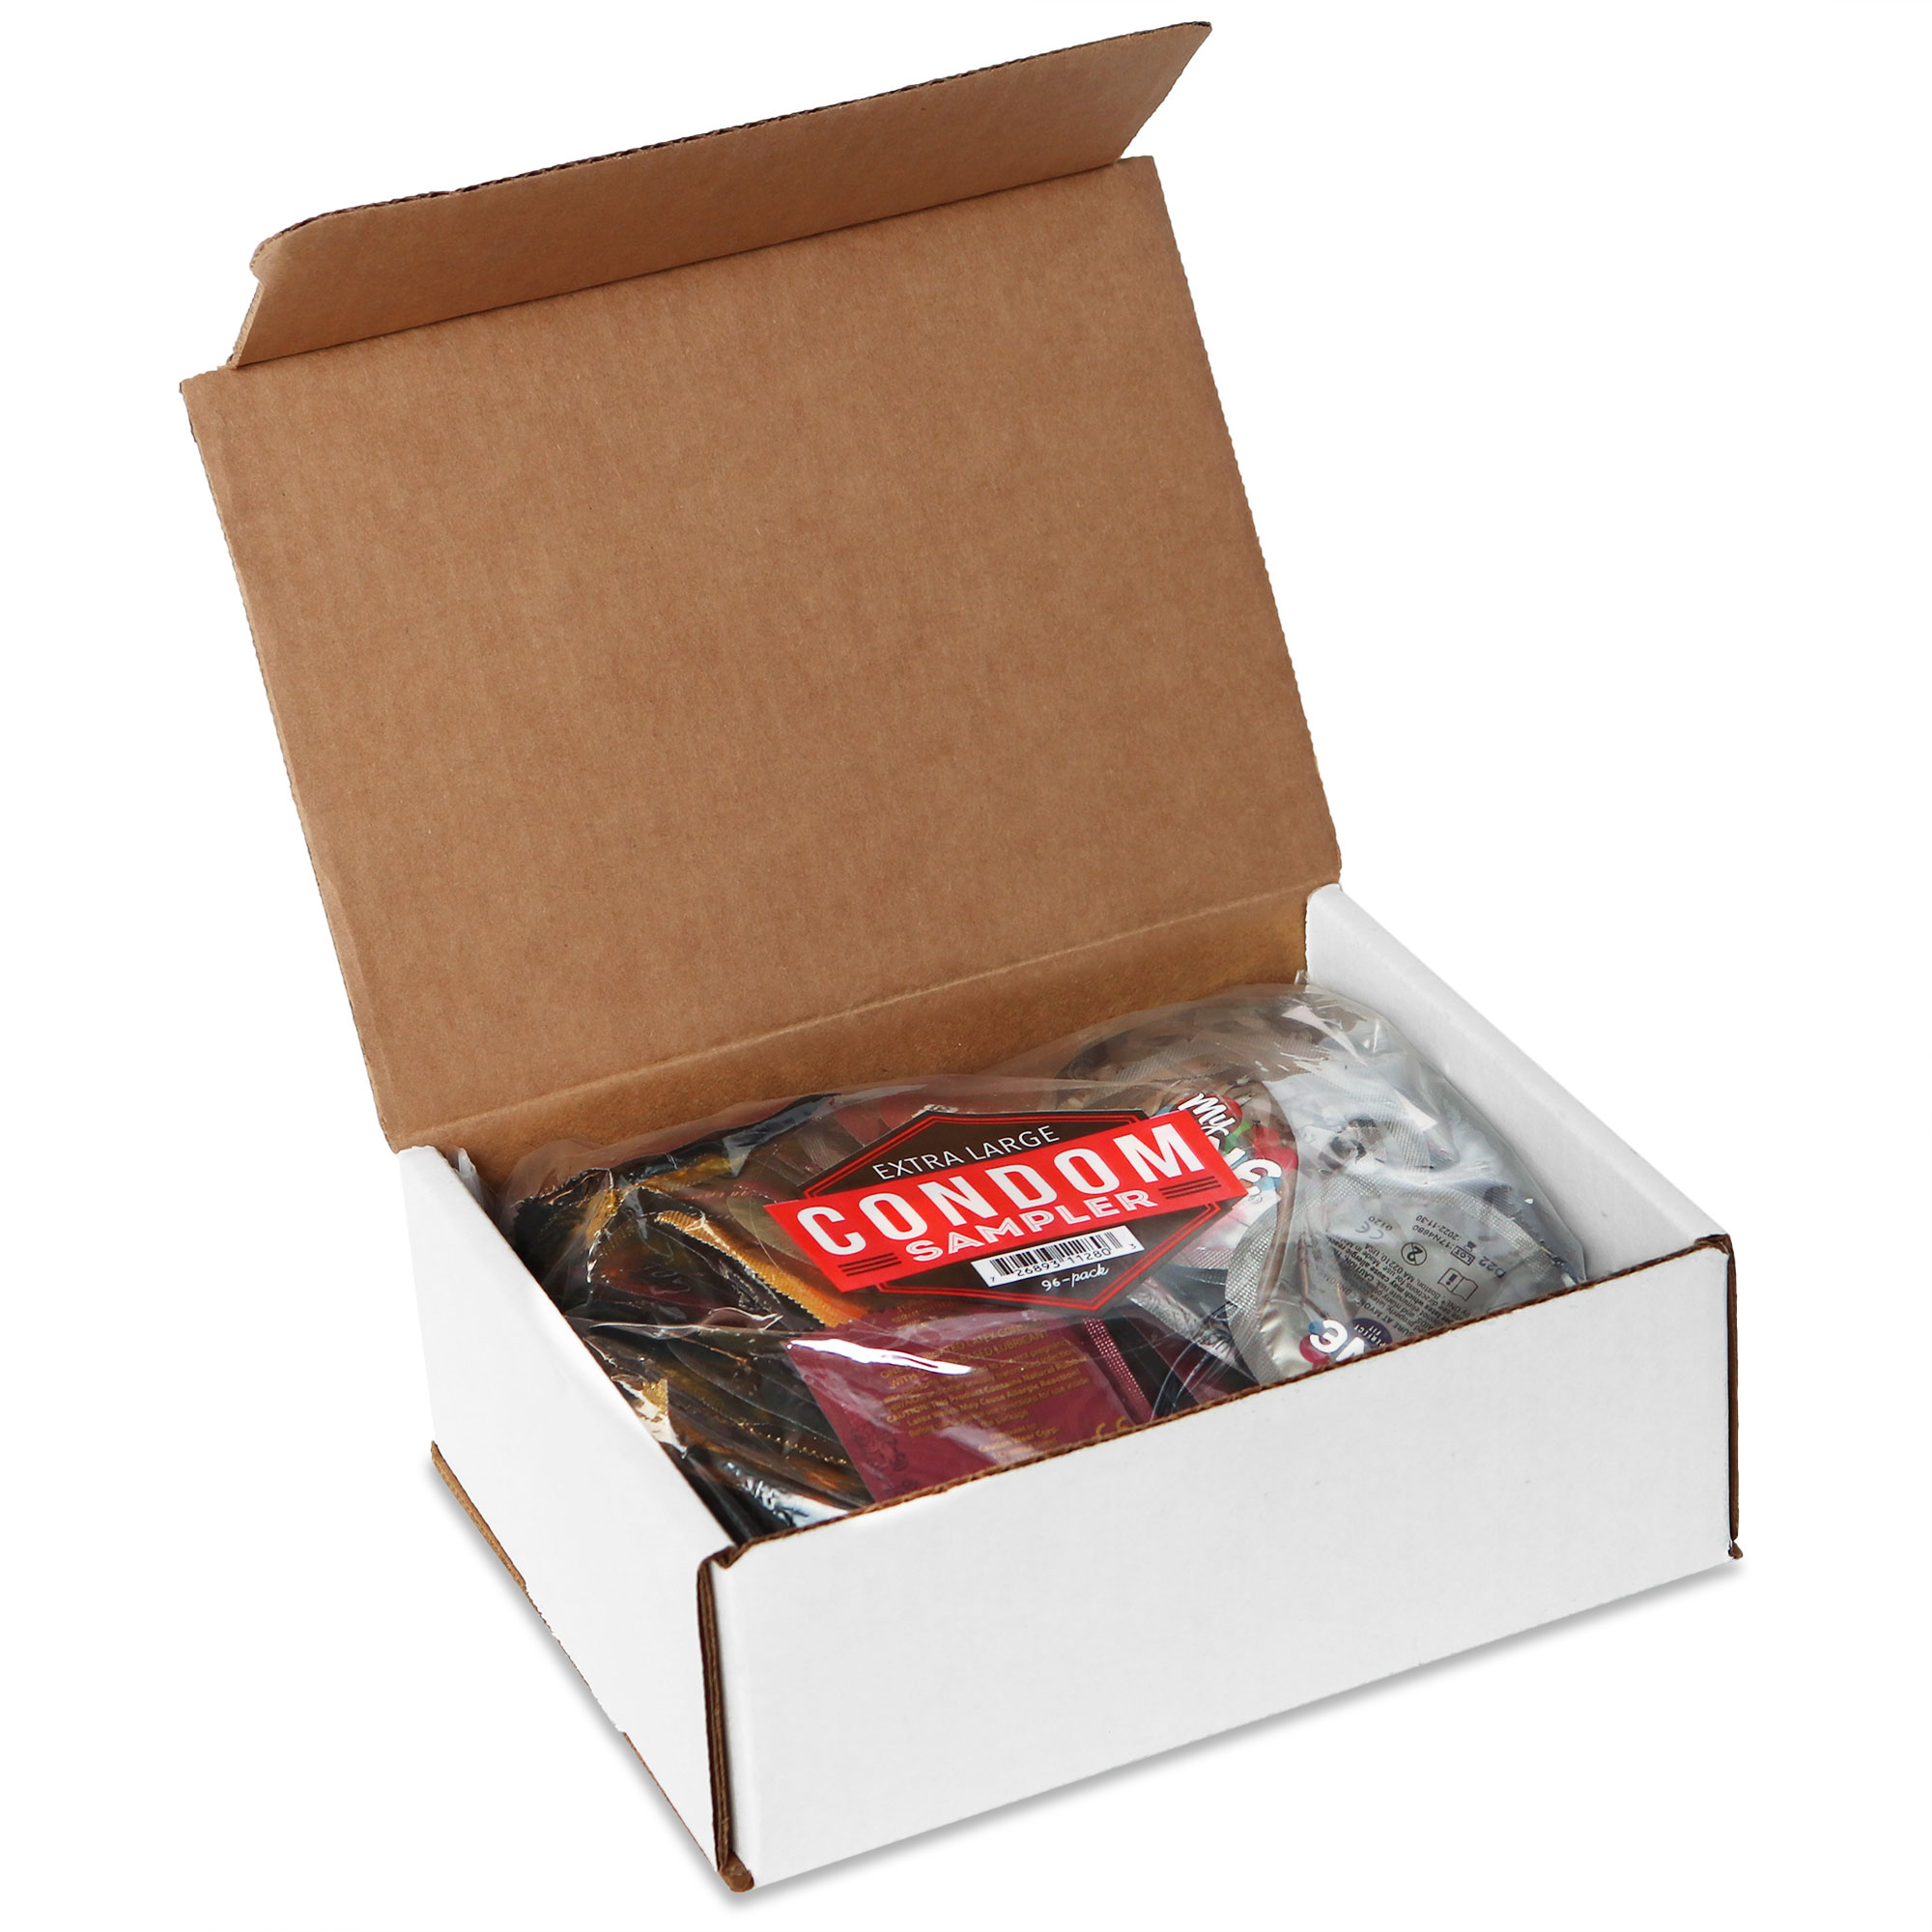 Extra Large Condom Sampler, 96-Count